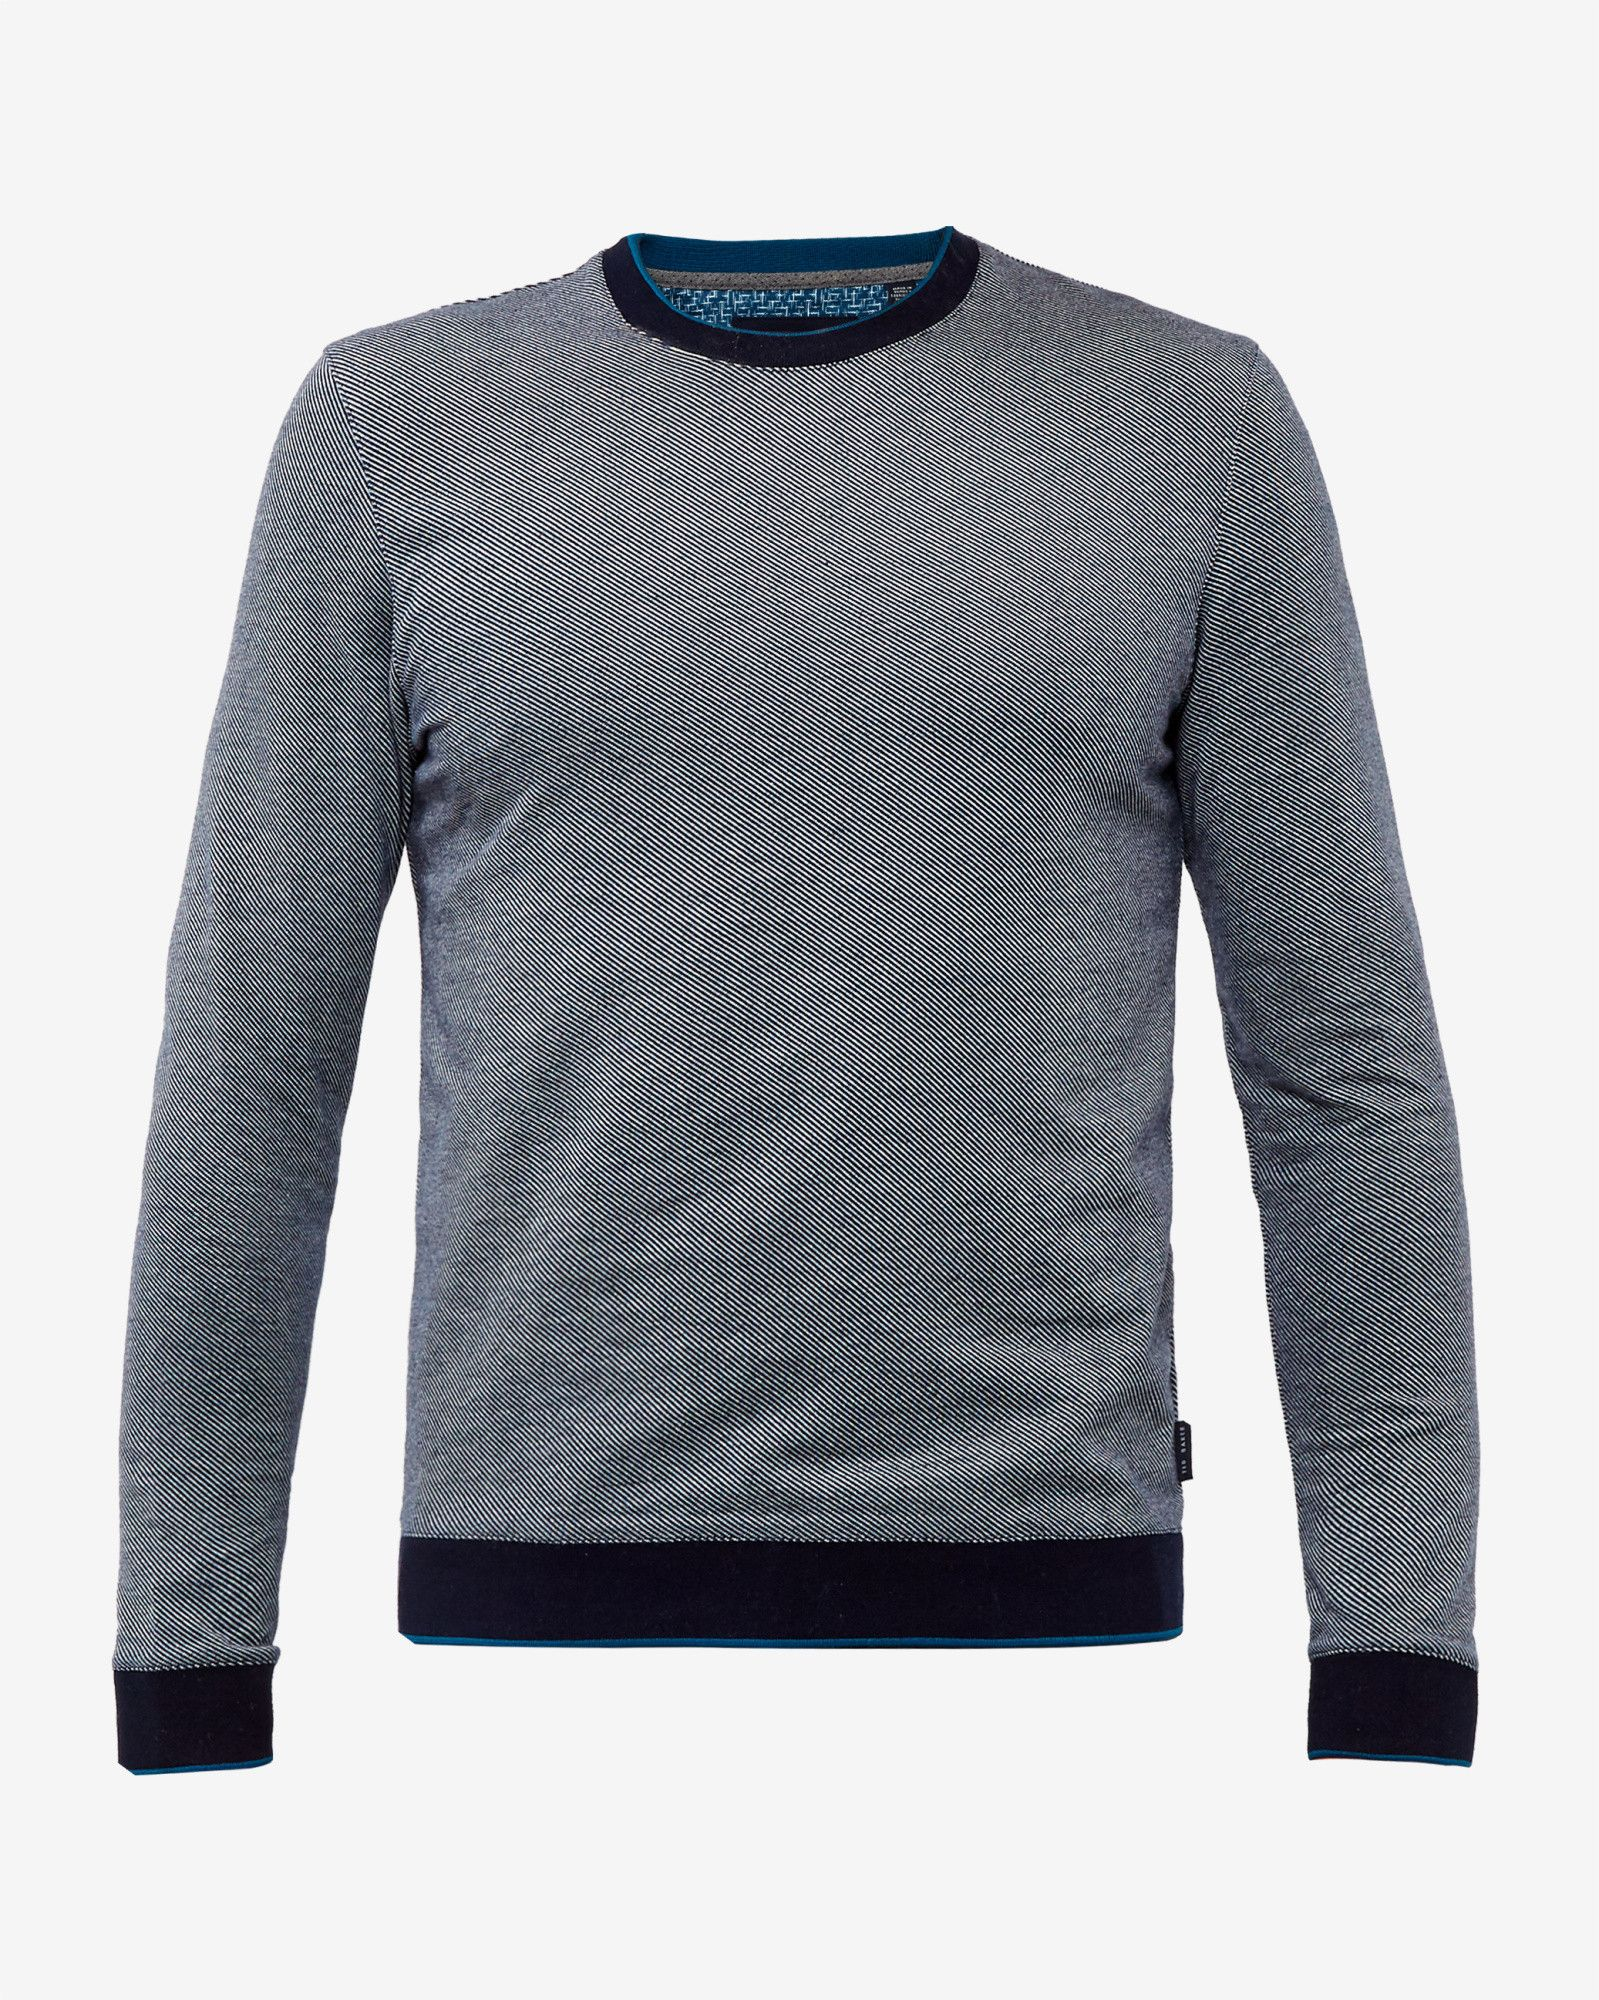 Crew neck cotton jumper - Navy | Knitwear | Ted Baker UK | Mens ...